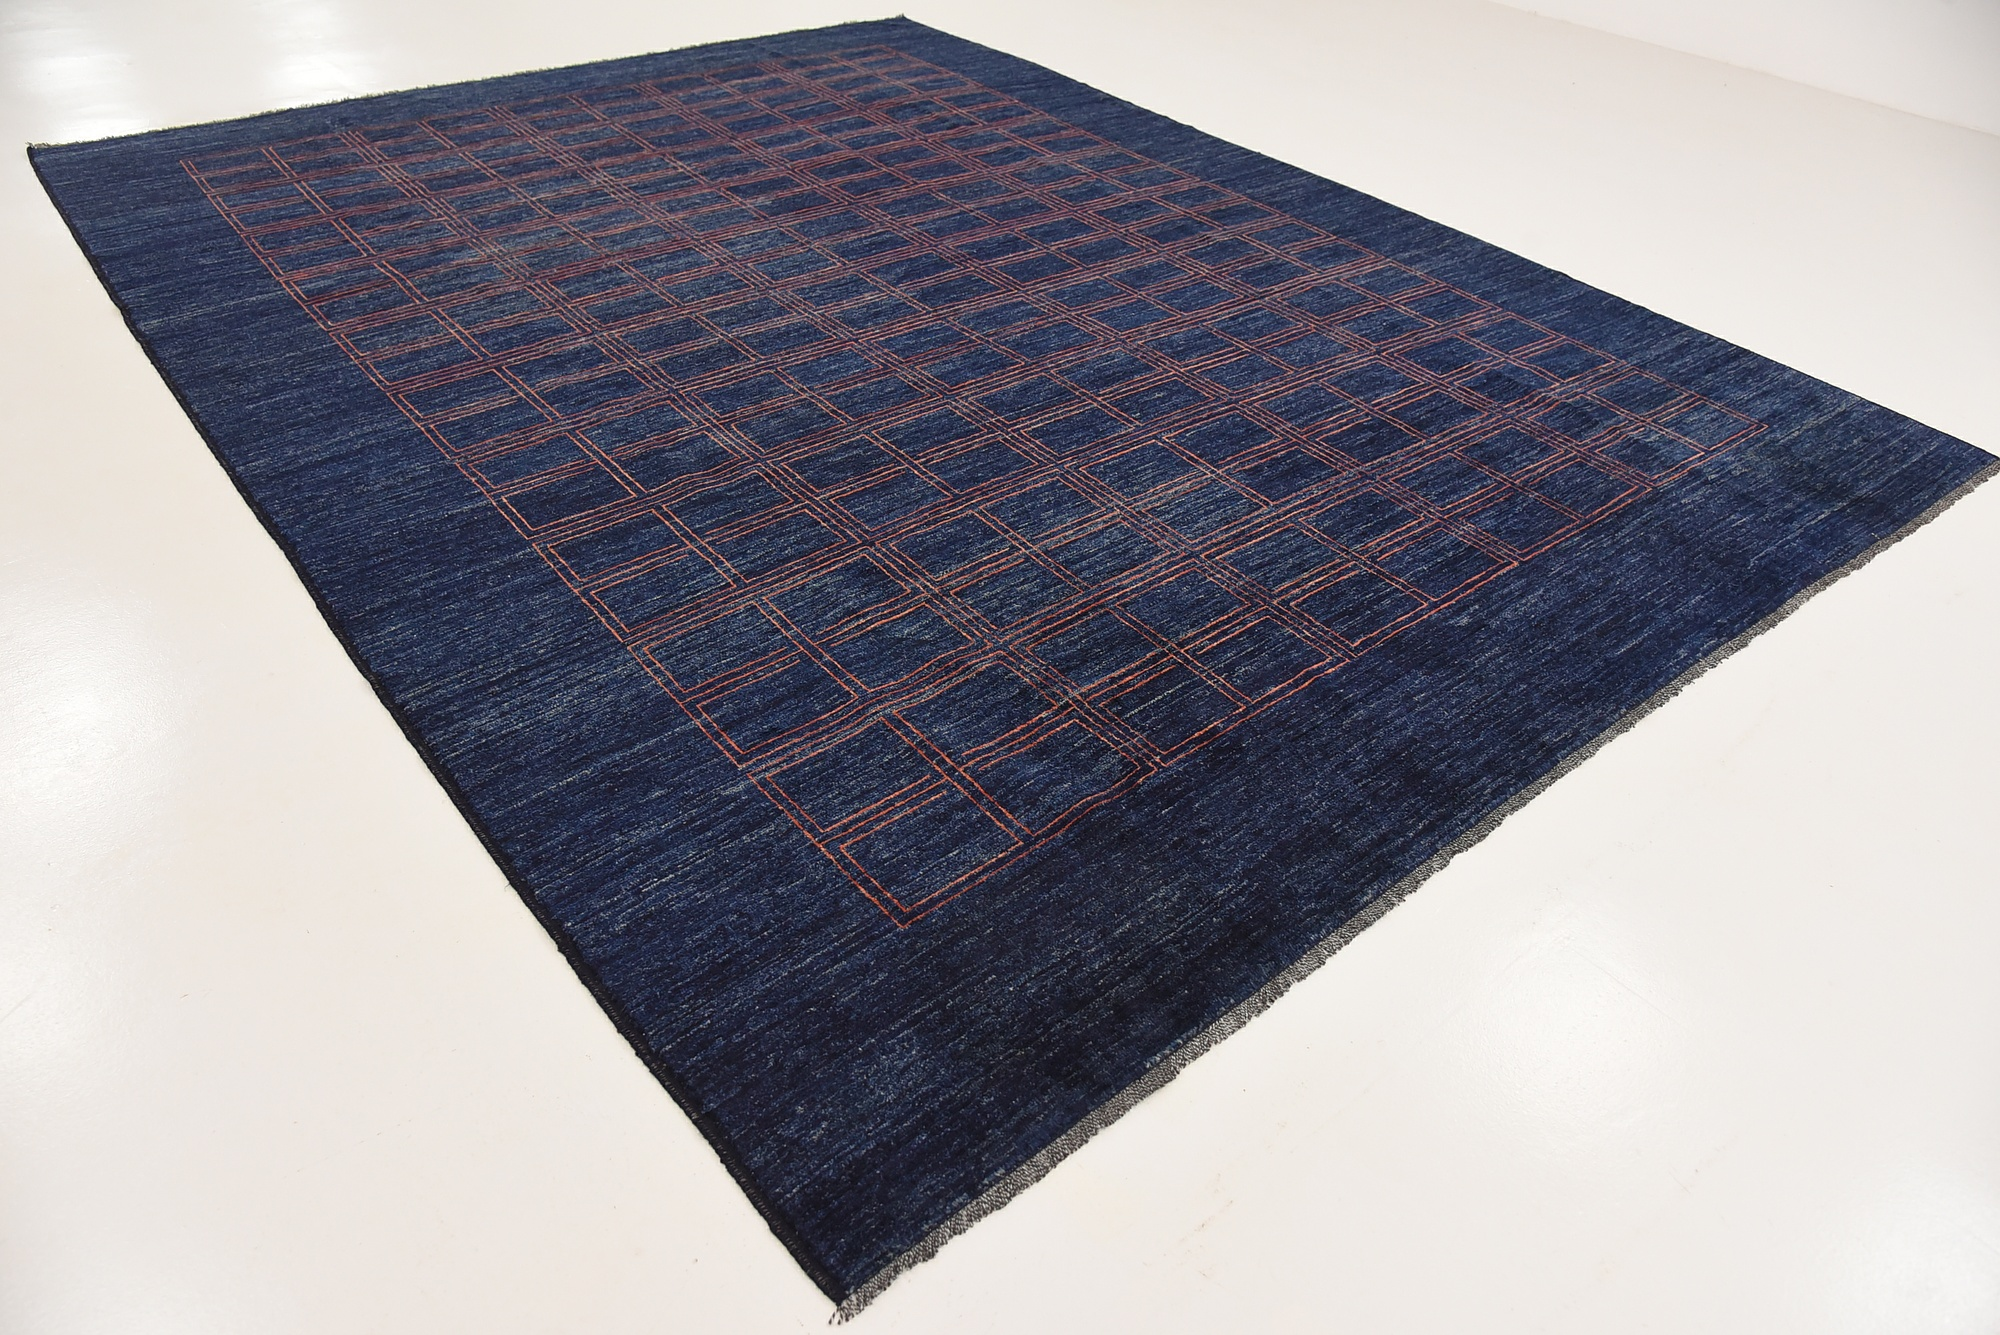 Modern Rugs Singapore Best Rug And Carpet Shops In  : 2000200010s20prog2189374image2 from www.honansantiques.com size 2000 x 1335 jpeg 922kB